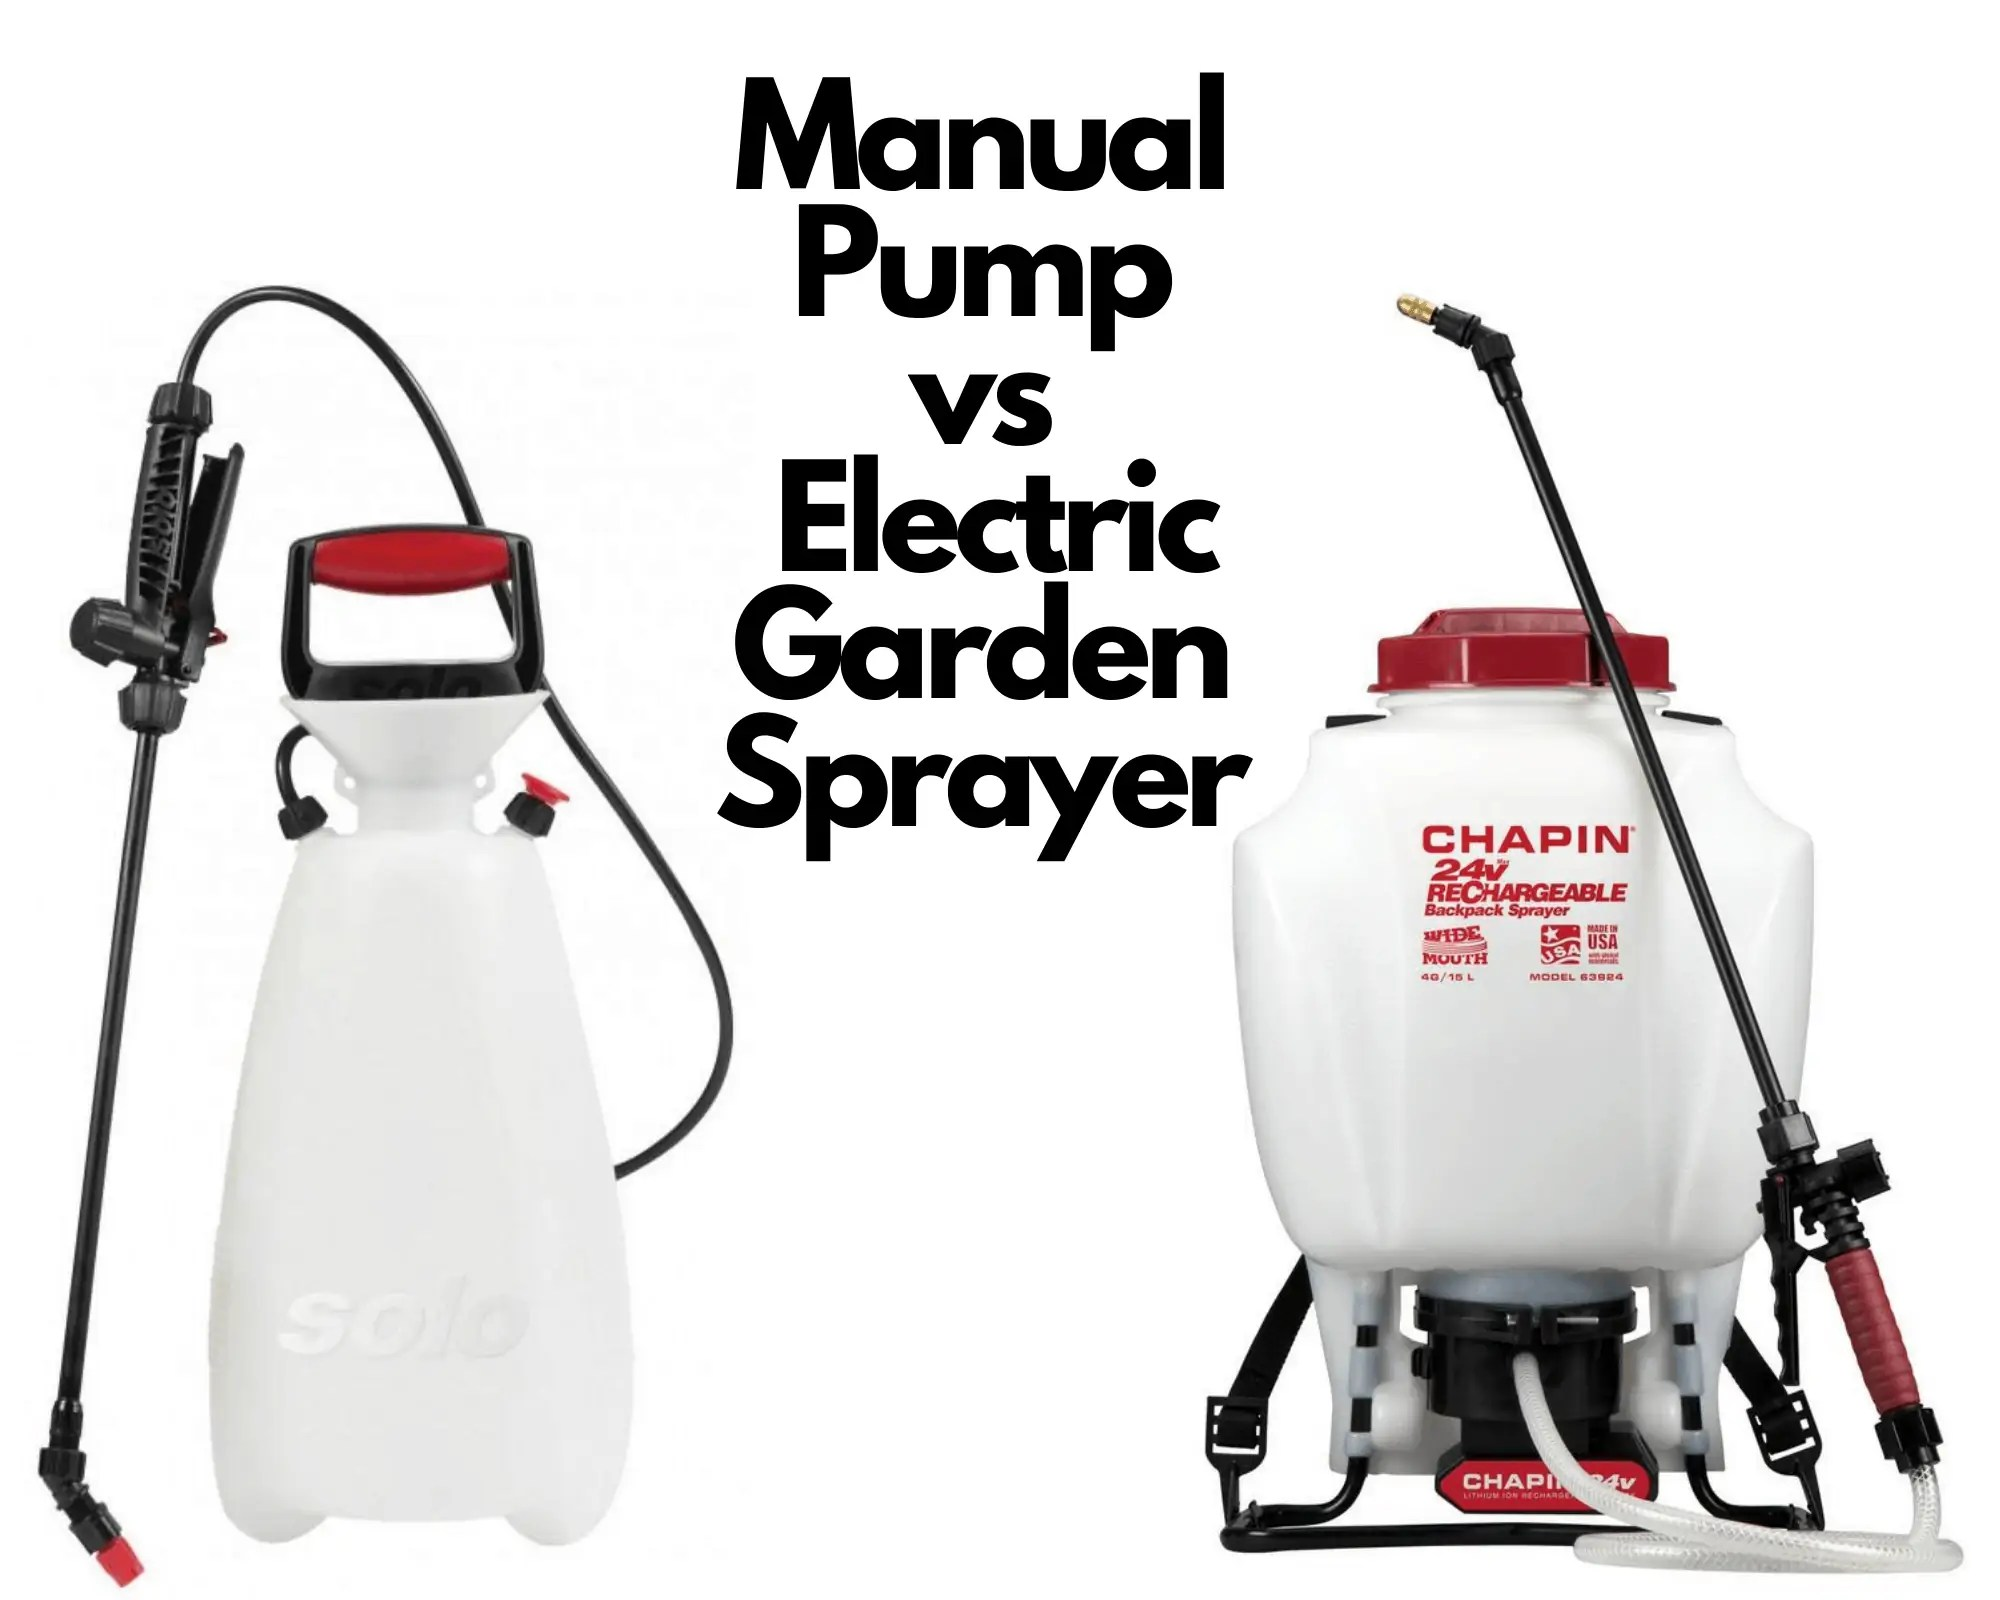 Manual vs Electric Sprayer